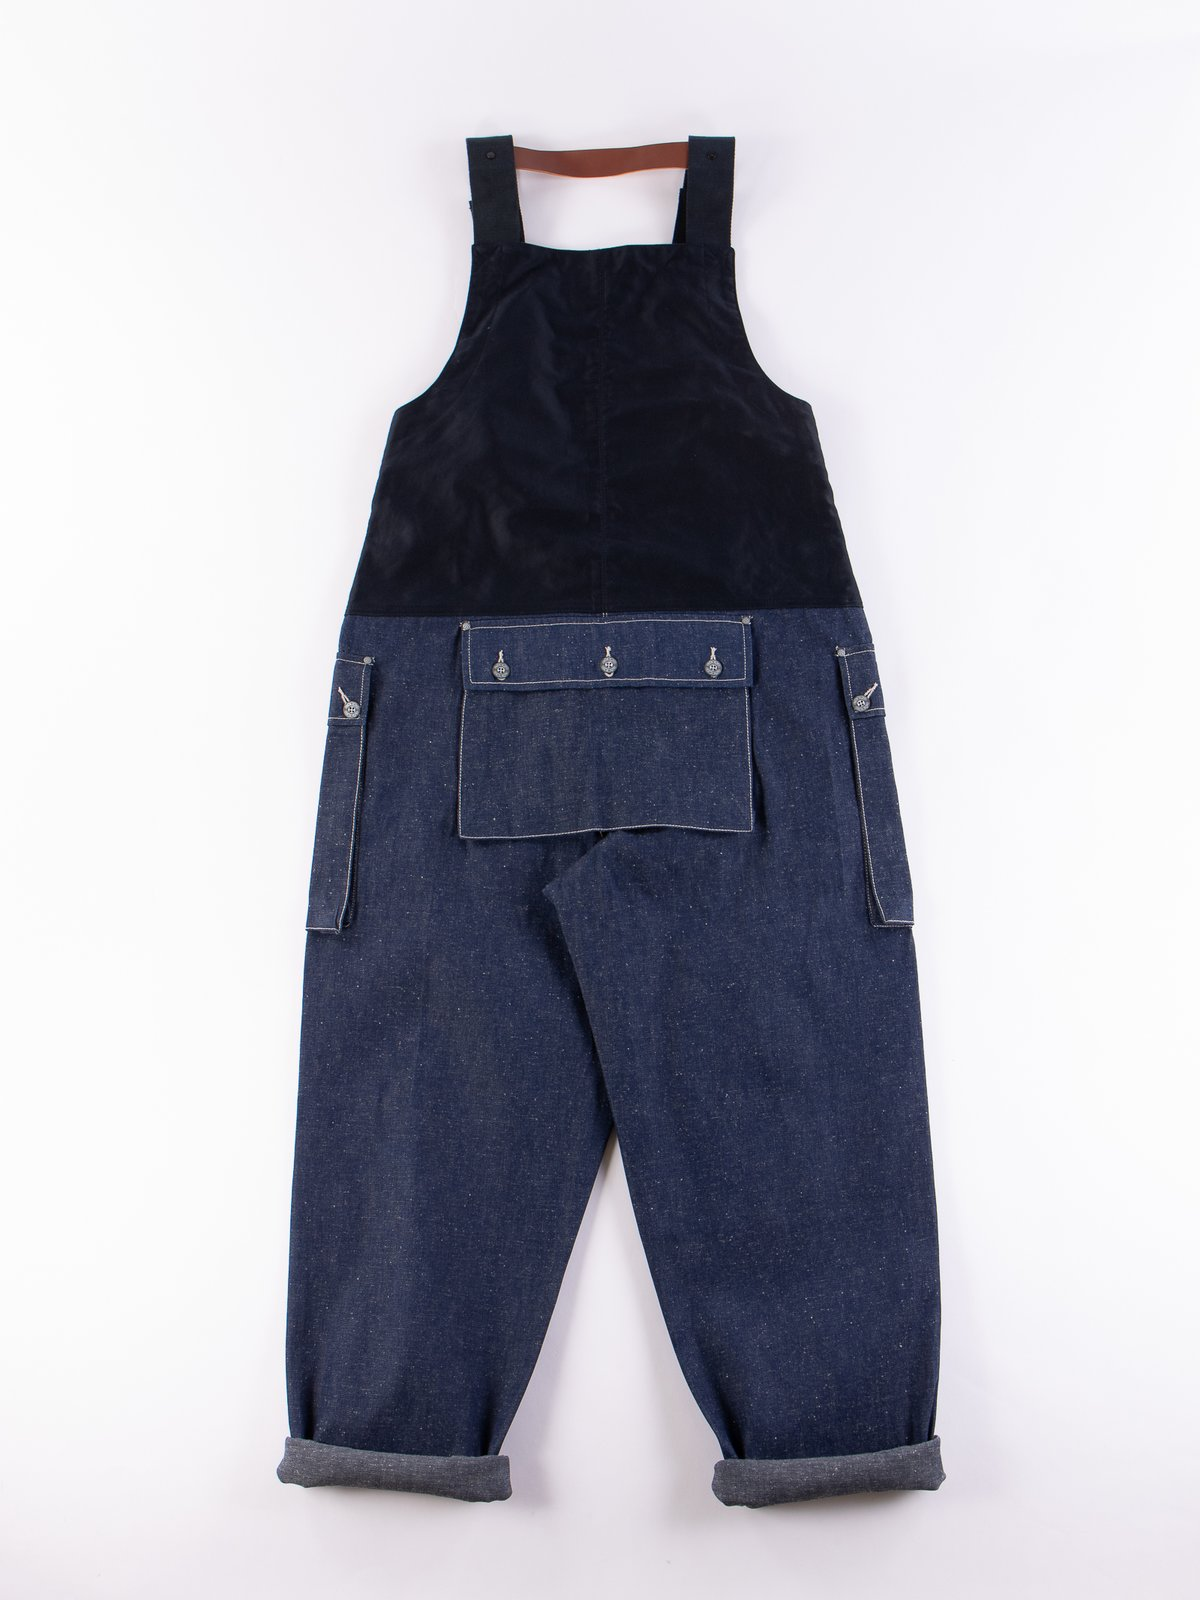 Lybro Split Denim/Navy Sateen Naval Dungaree - Image 5